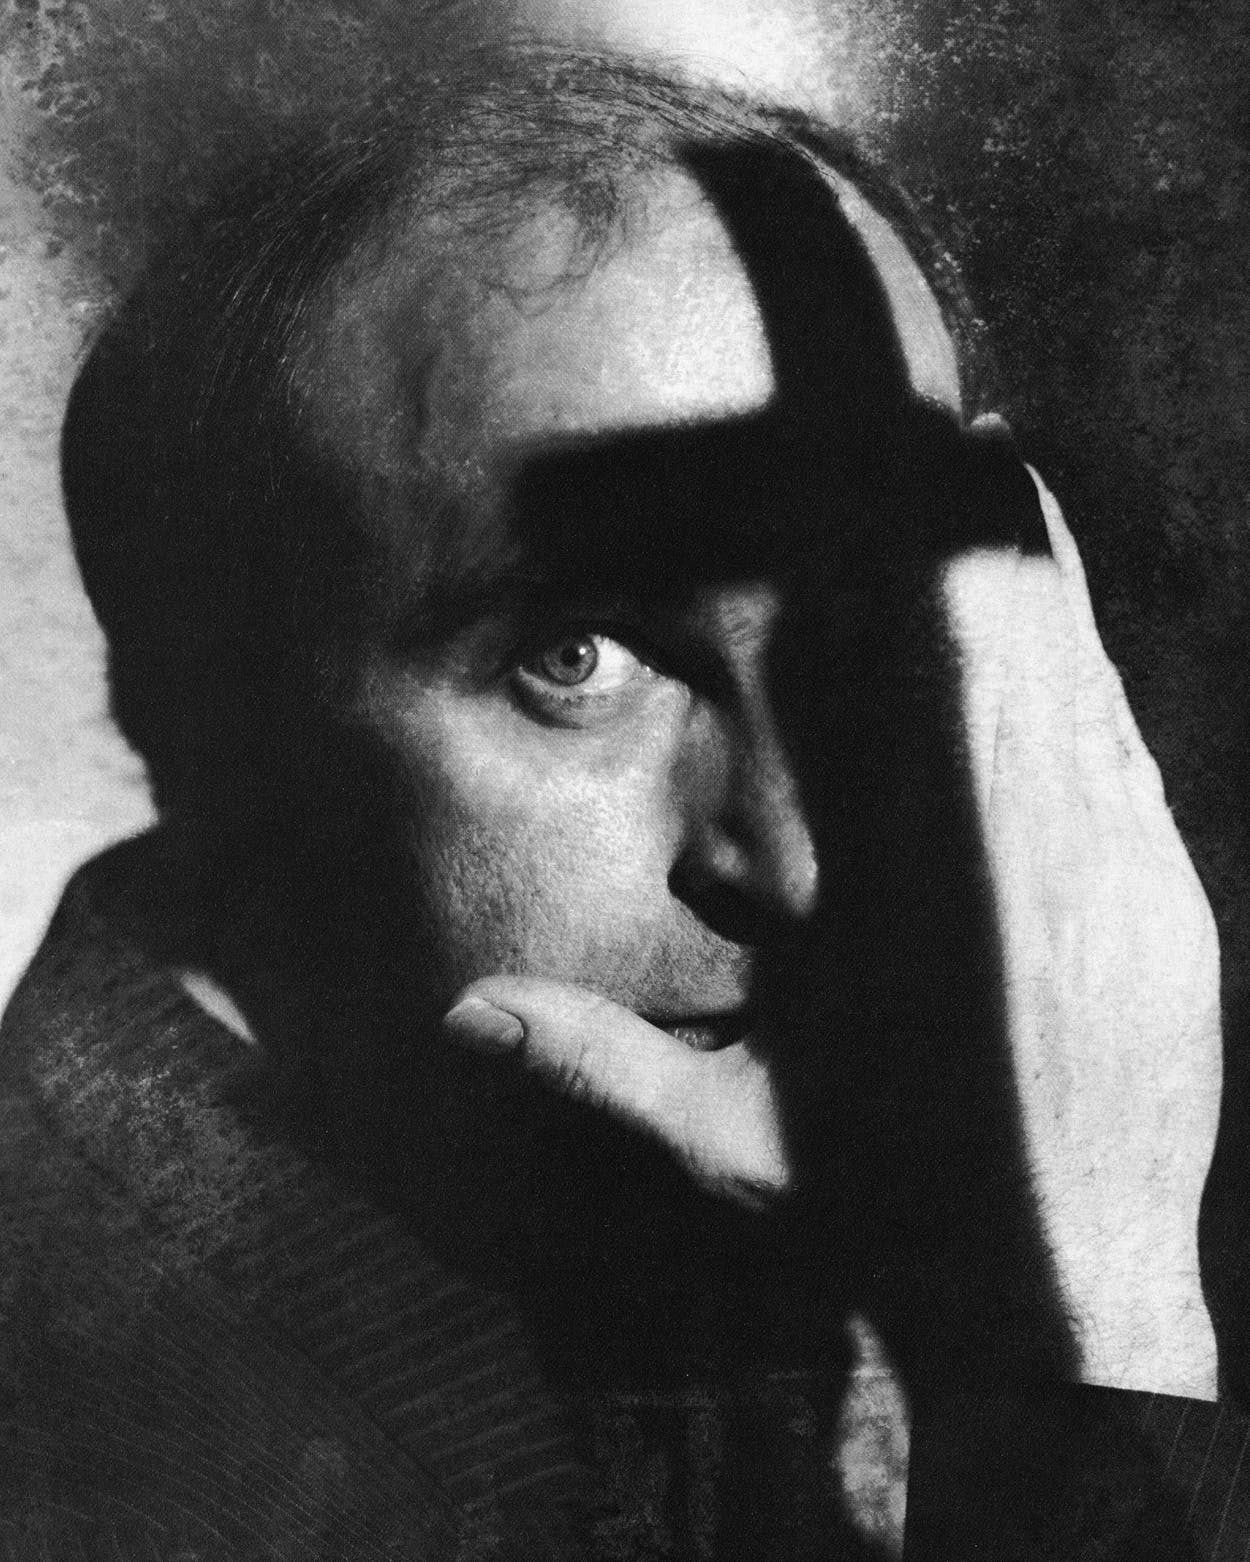 A conceptual photo illustration of a model stand-in for Reverend Walker Railey, with a shadow of a cross obscuring his face.